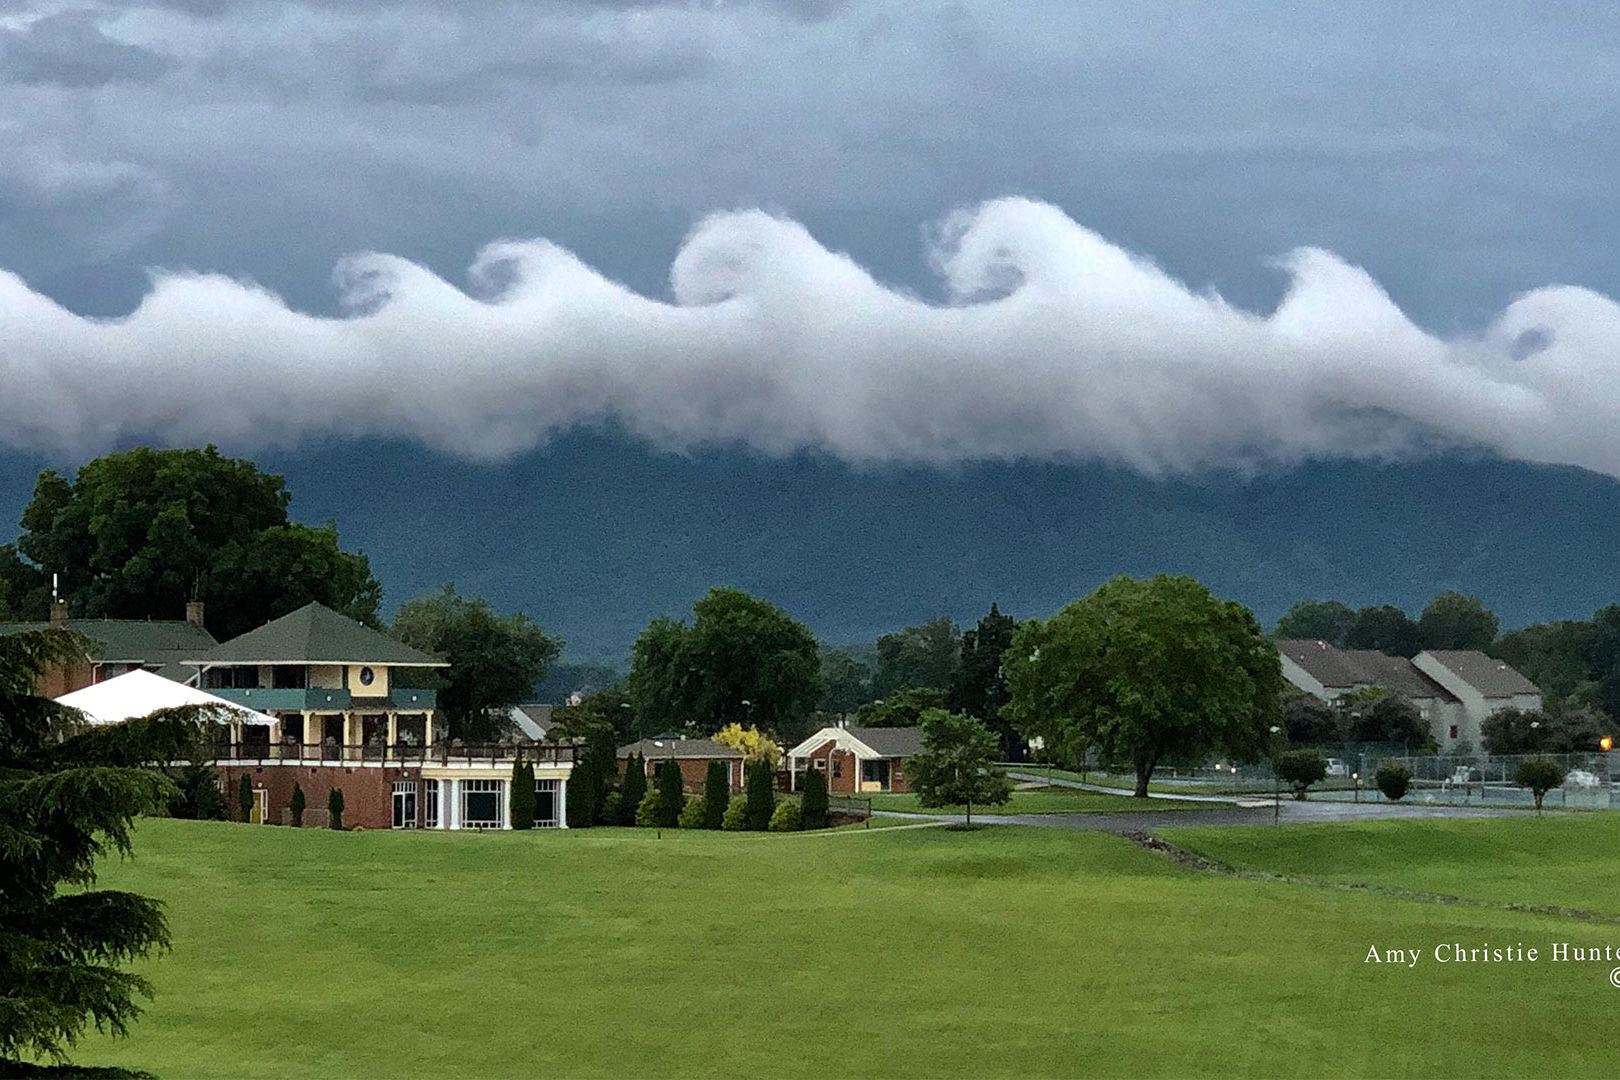 Rare Wave-Like Clouds Roll Over Virginia in Viral Photo: 'Mother Nature Was Putting on a Show!'